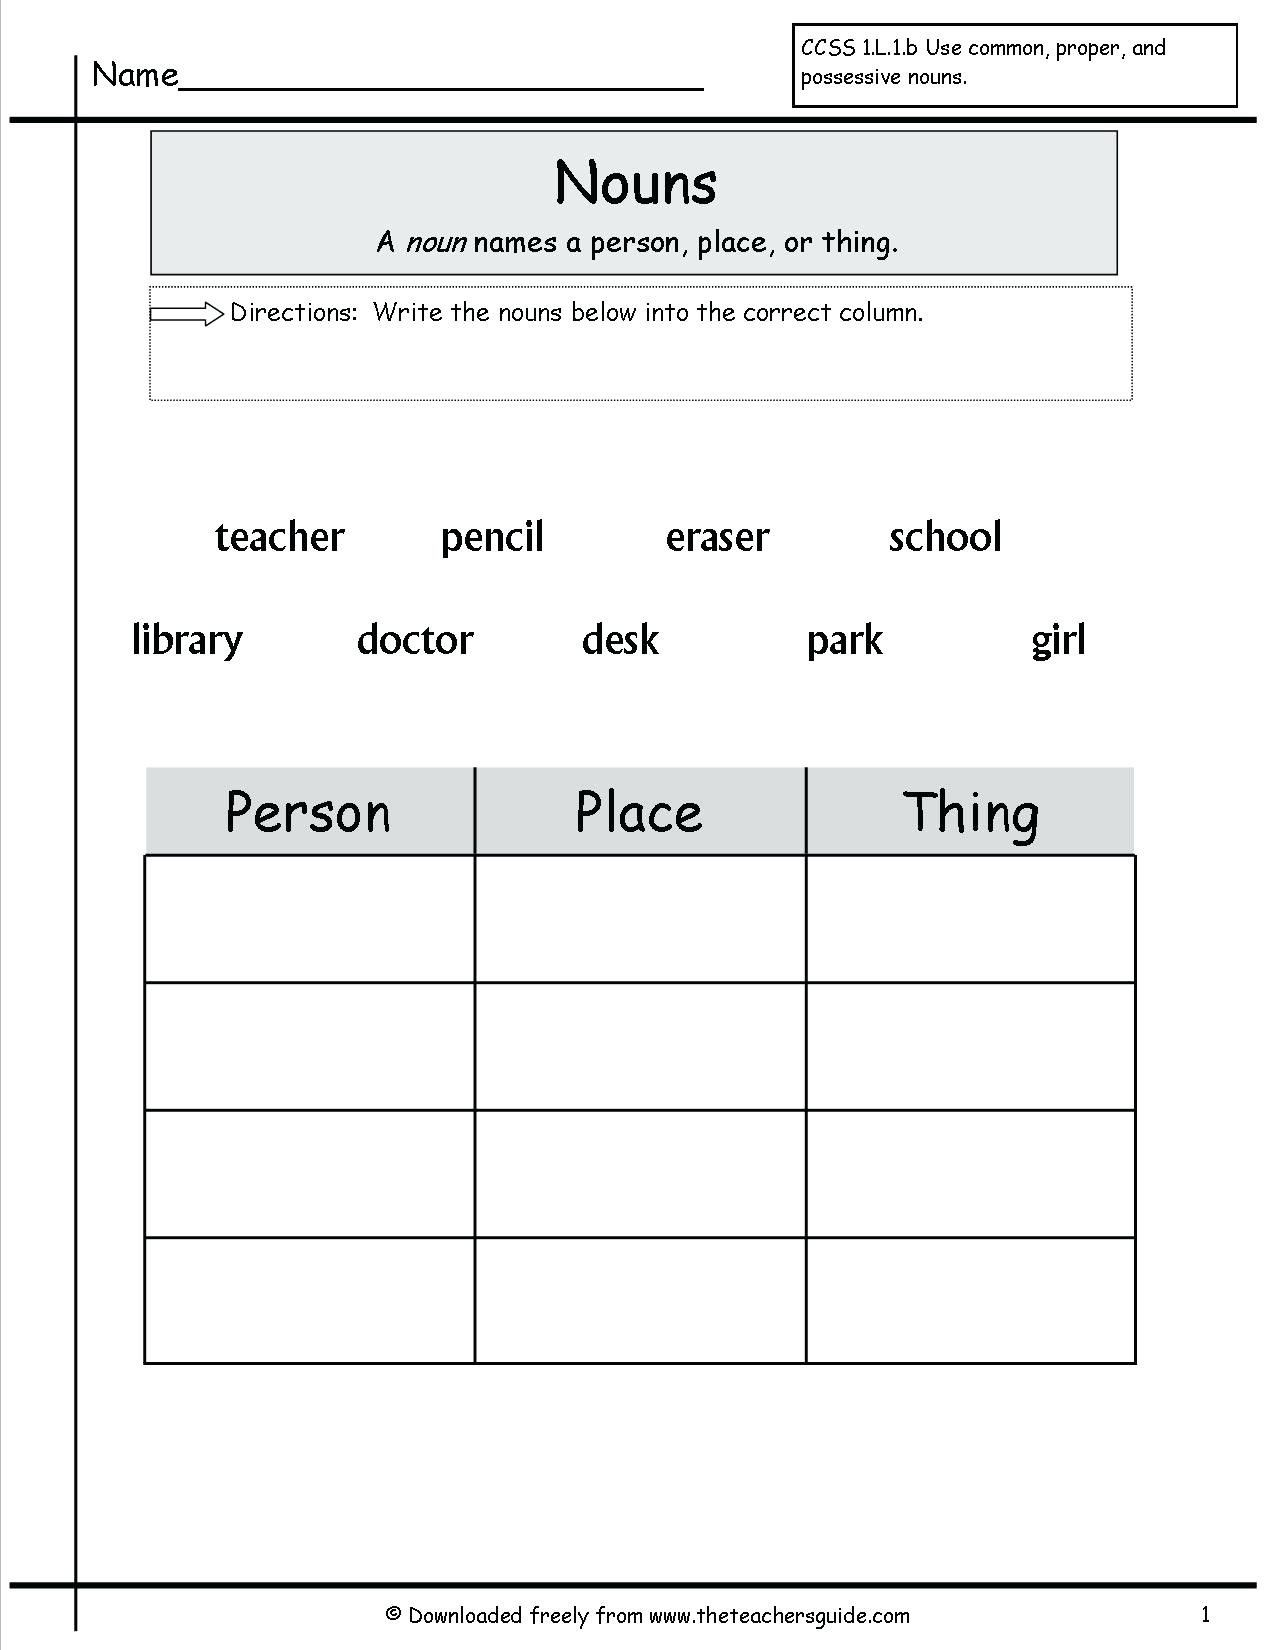 5 Free Math Worksheets Second Grade 2 Measurement Convert